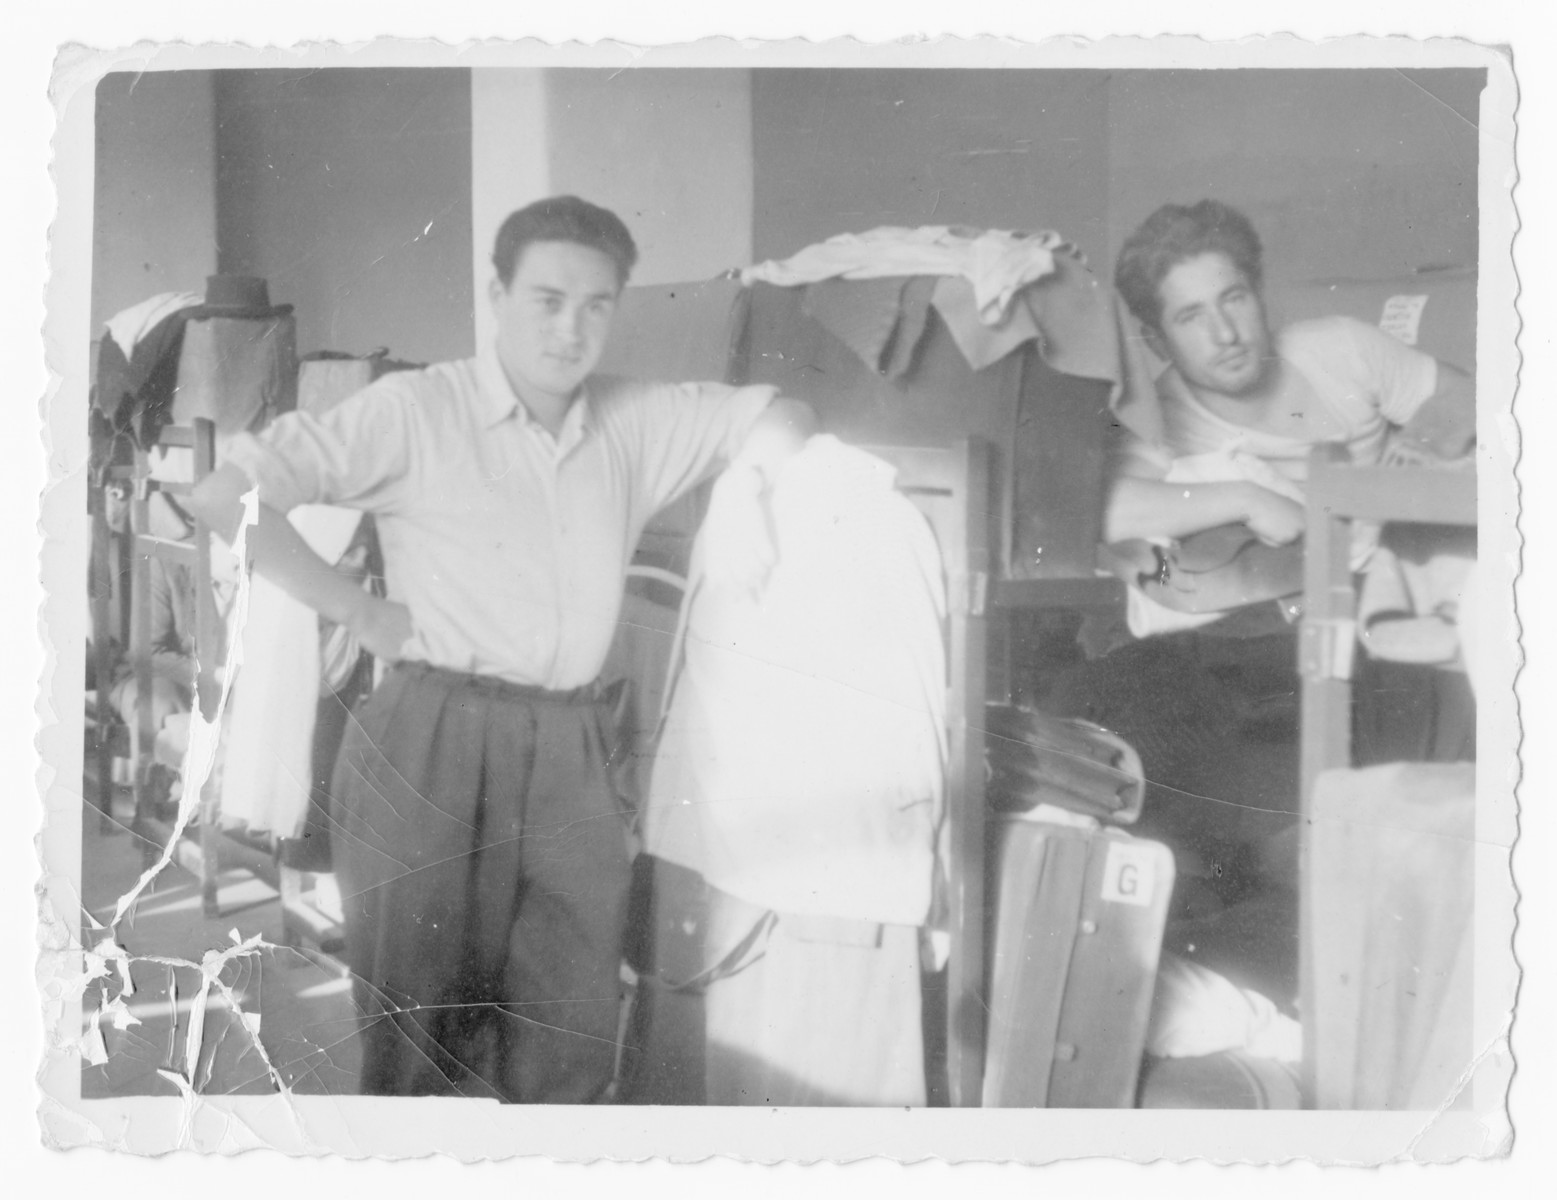 Bernard Pasternak (right) and another man pose in the barrack of an unidentified displaced persons camp.